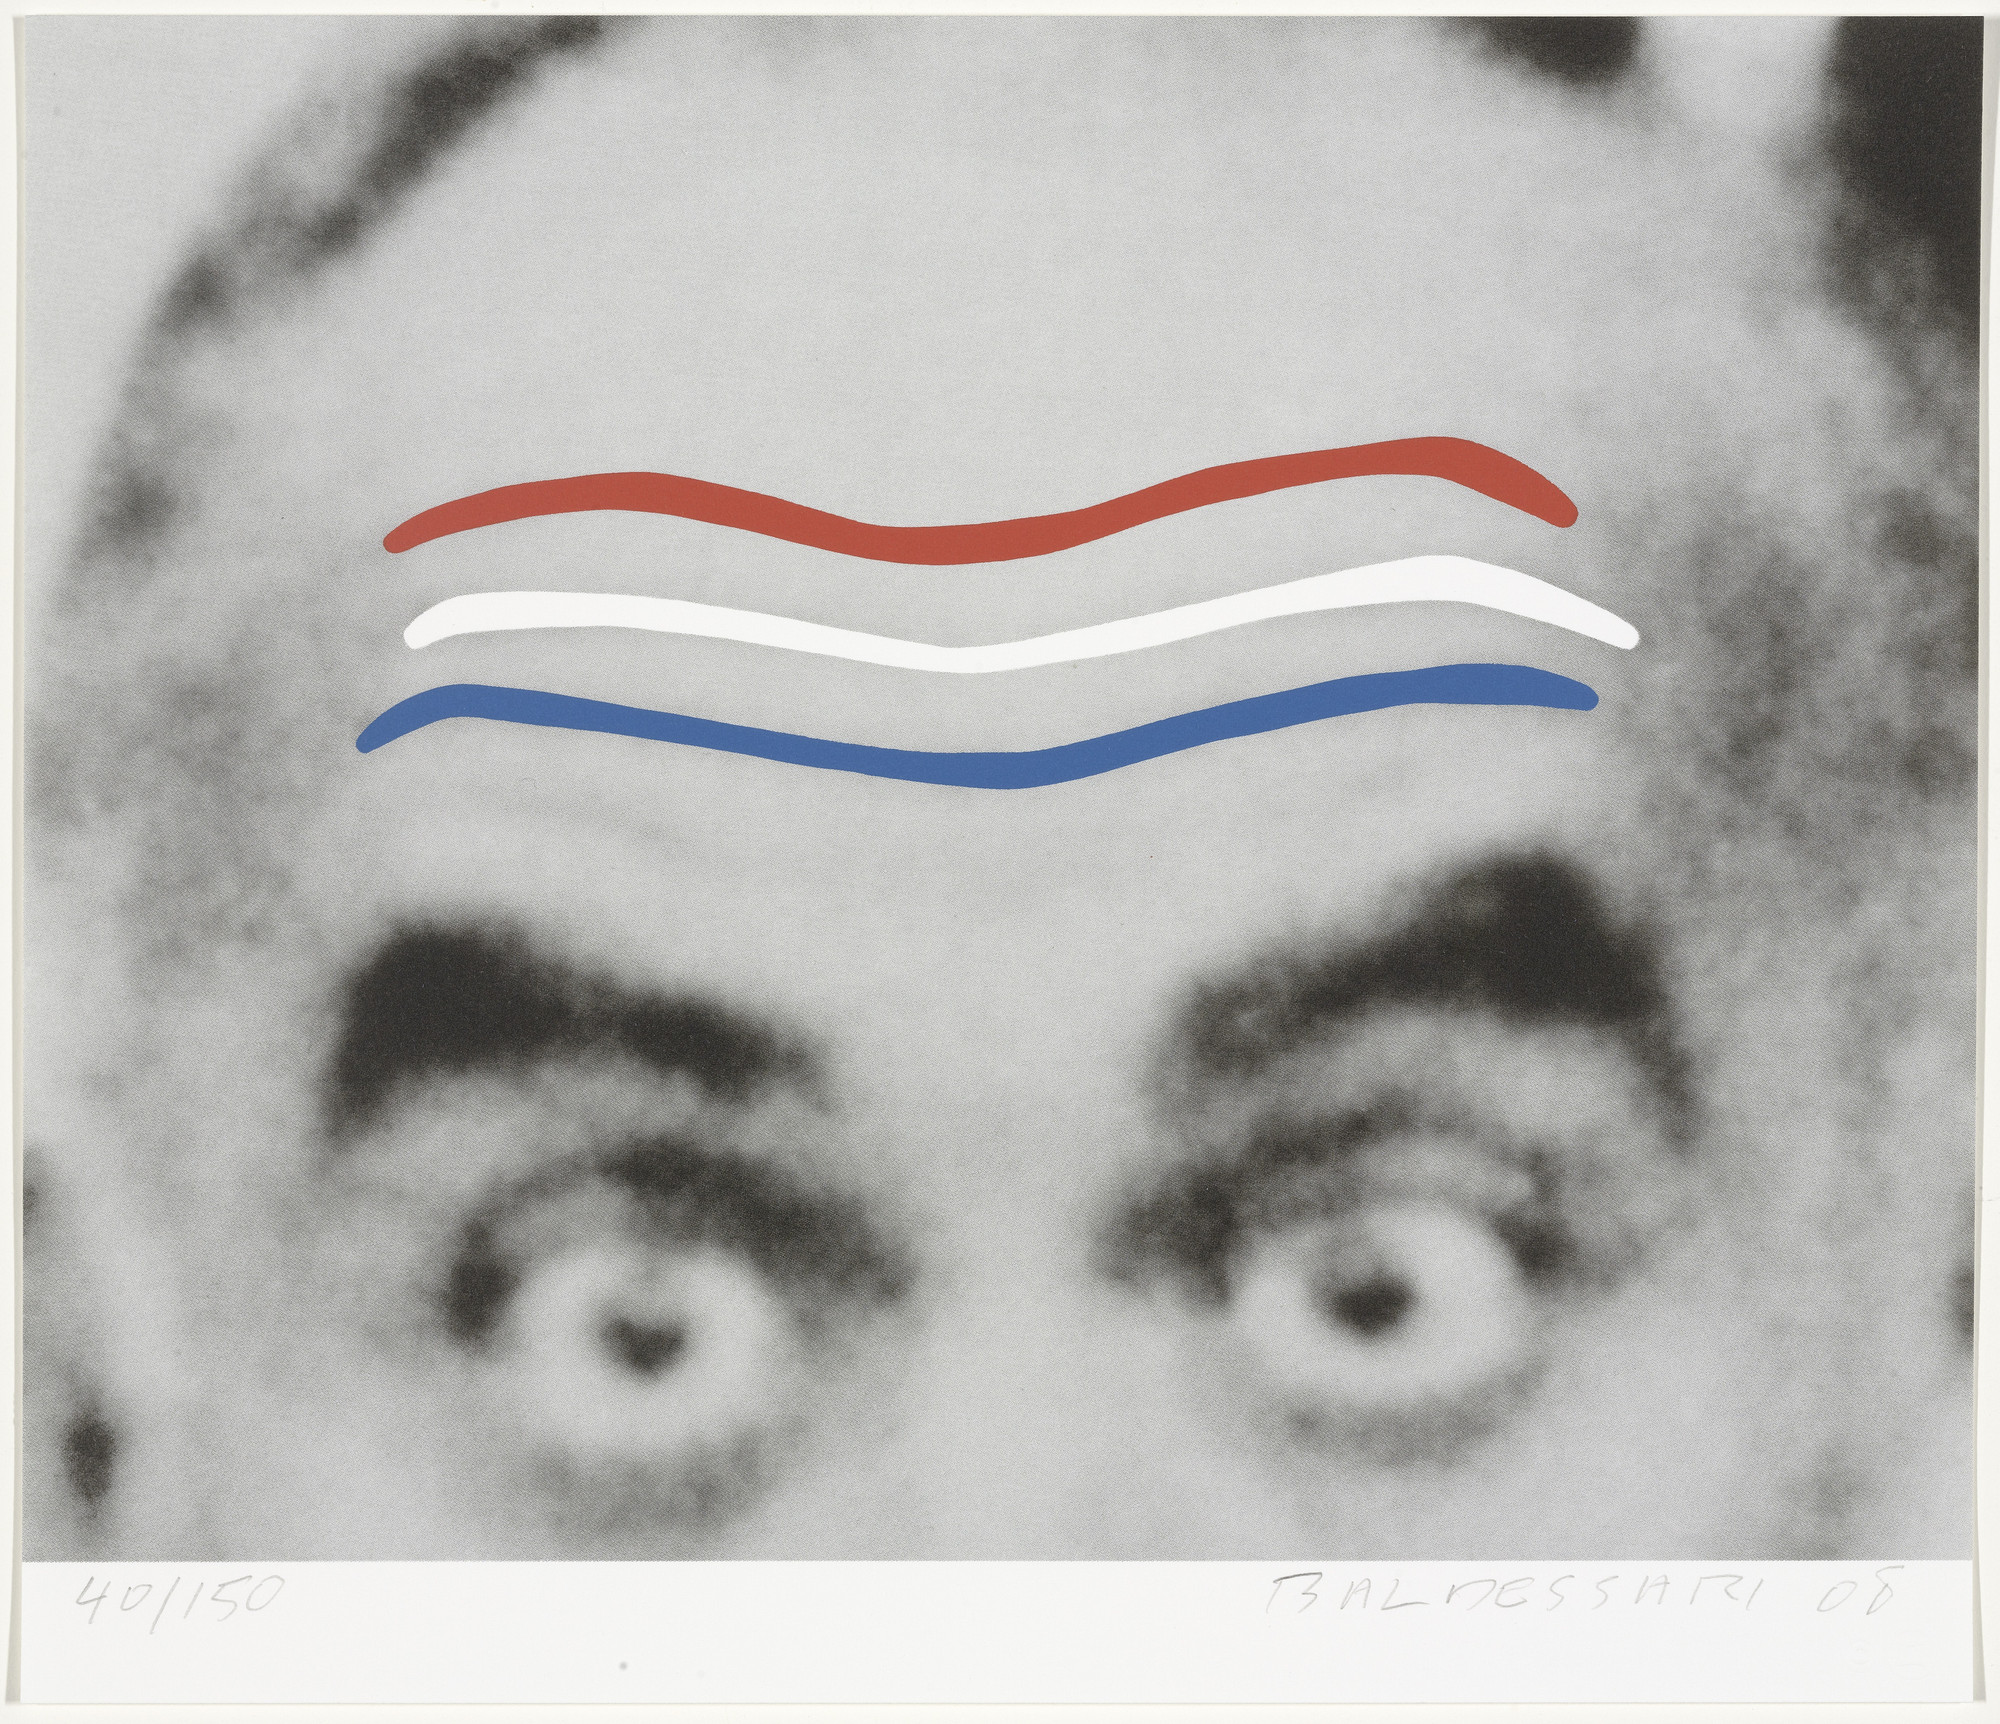 John Baldessari. Raised Eyebrows/Furrowed Foreheads (Red, White, and Blue) from Artists for Obama. 2008